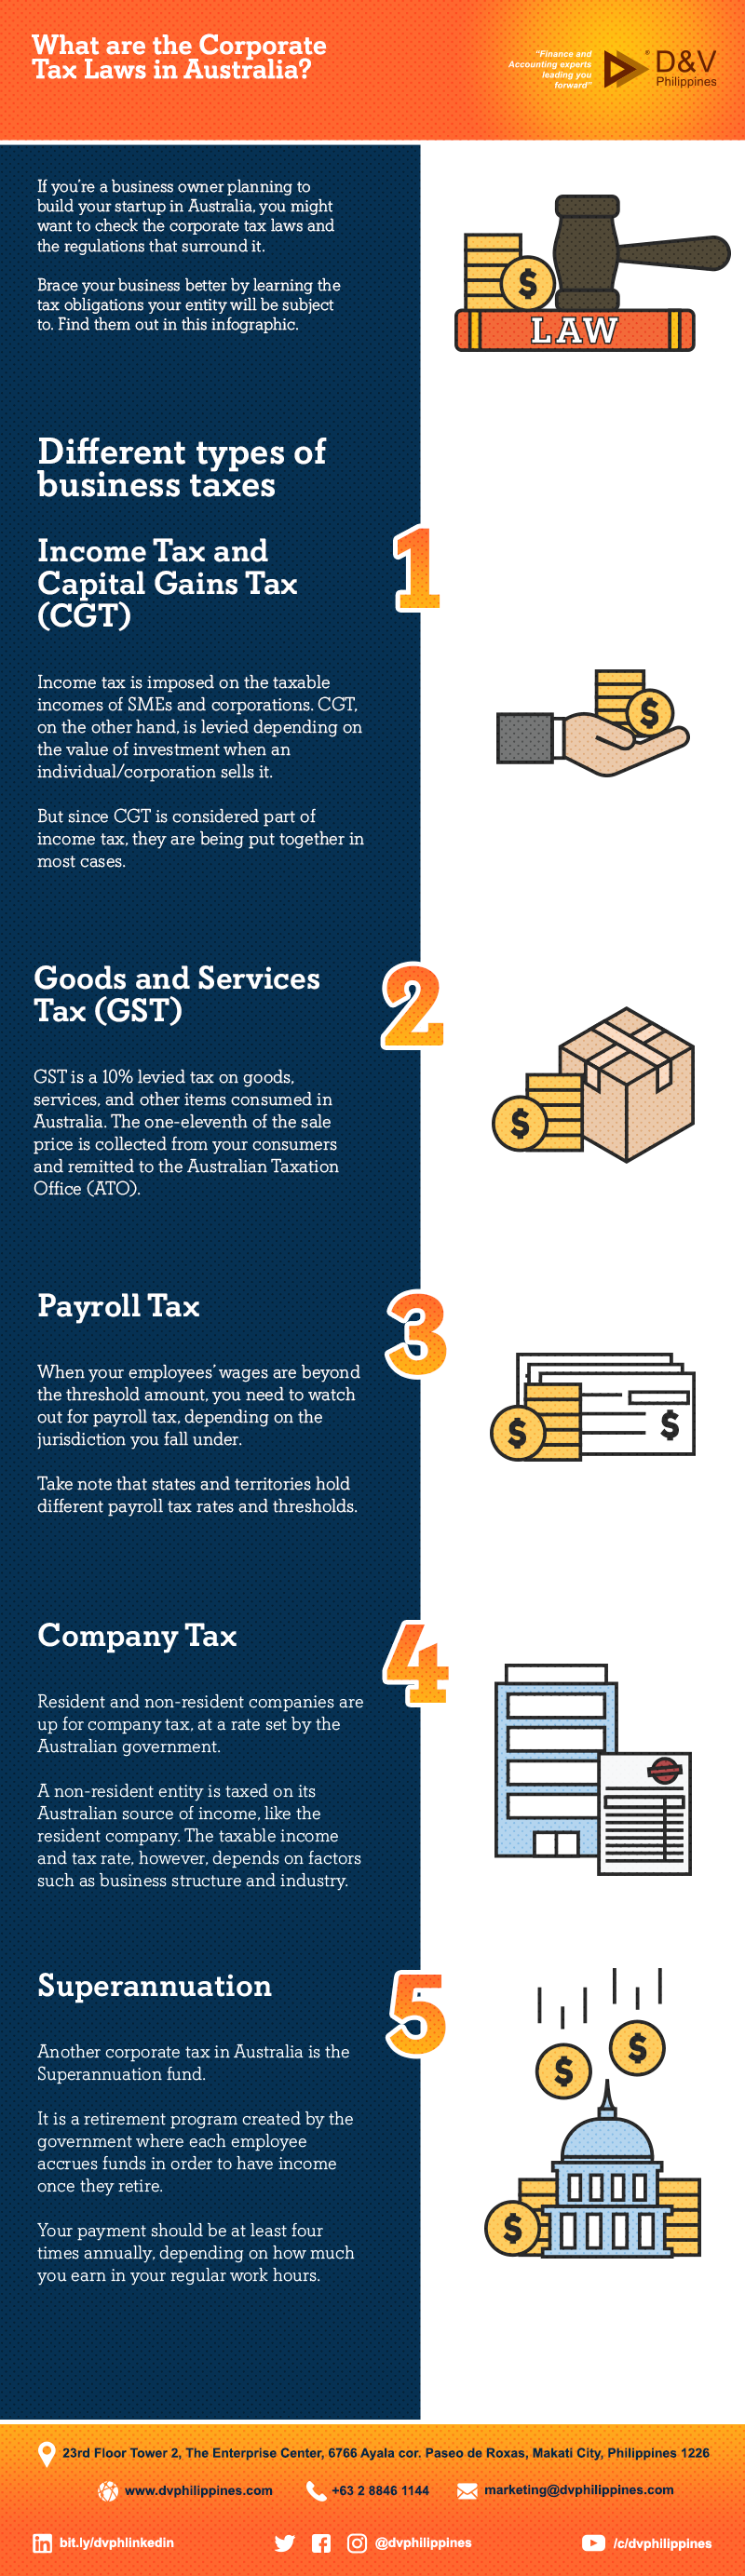 Infog_W_C_What are the Corporate Tax Laws in Australia